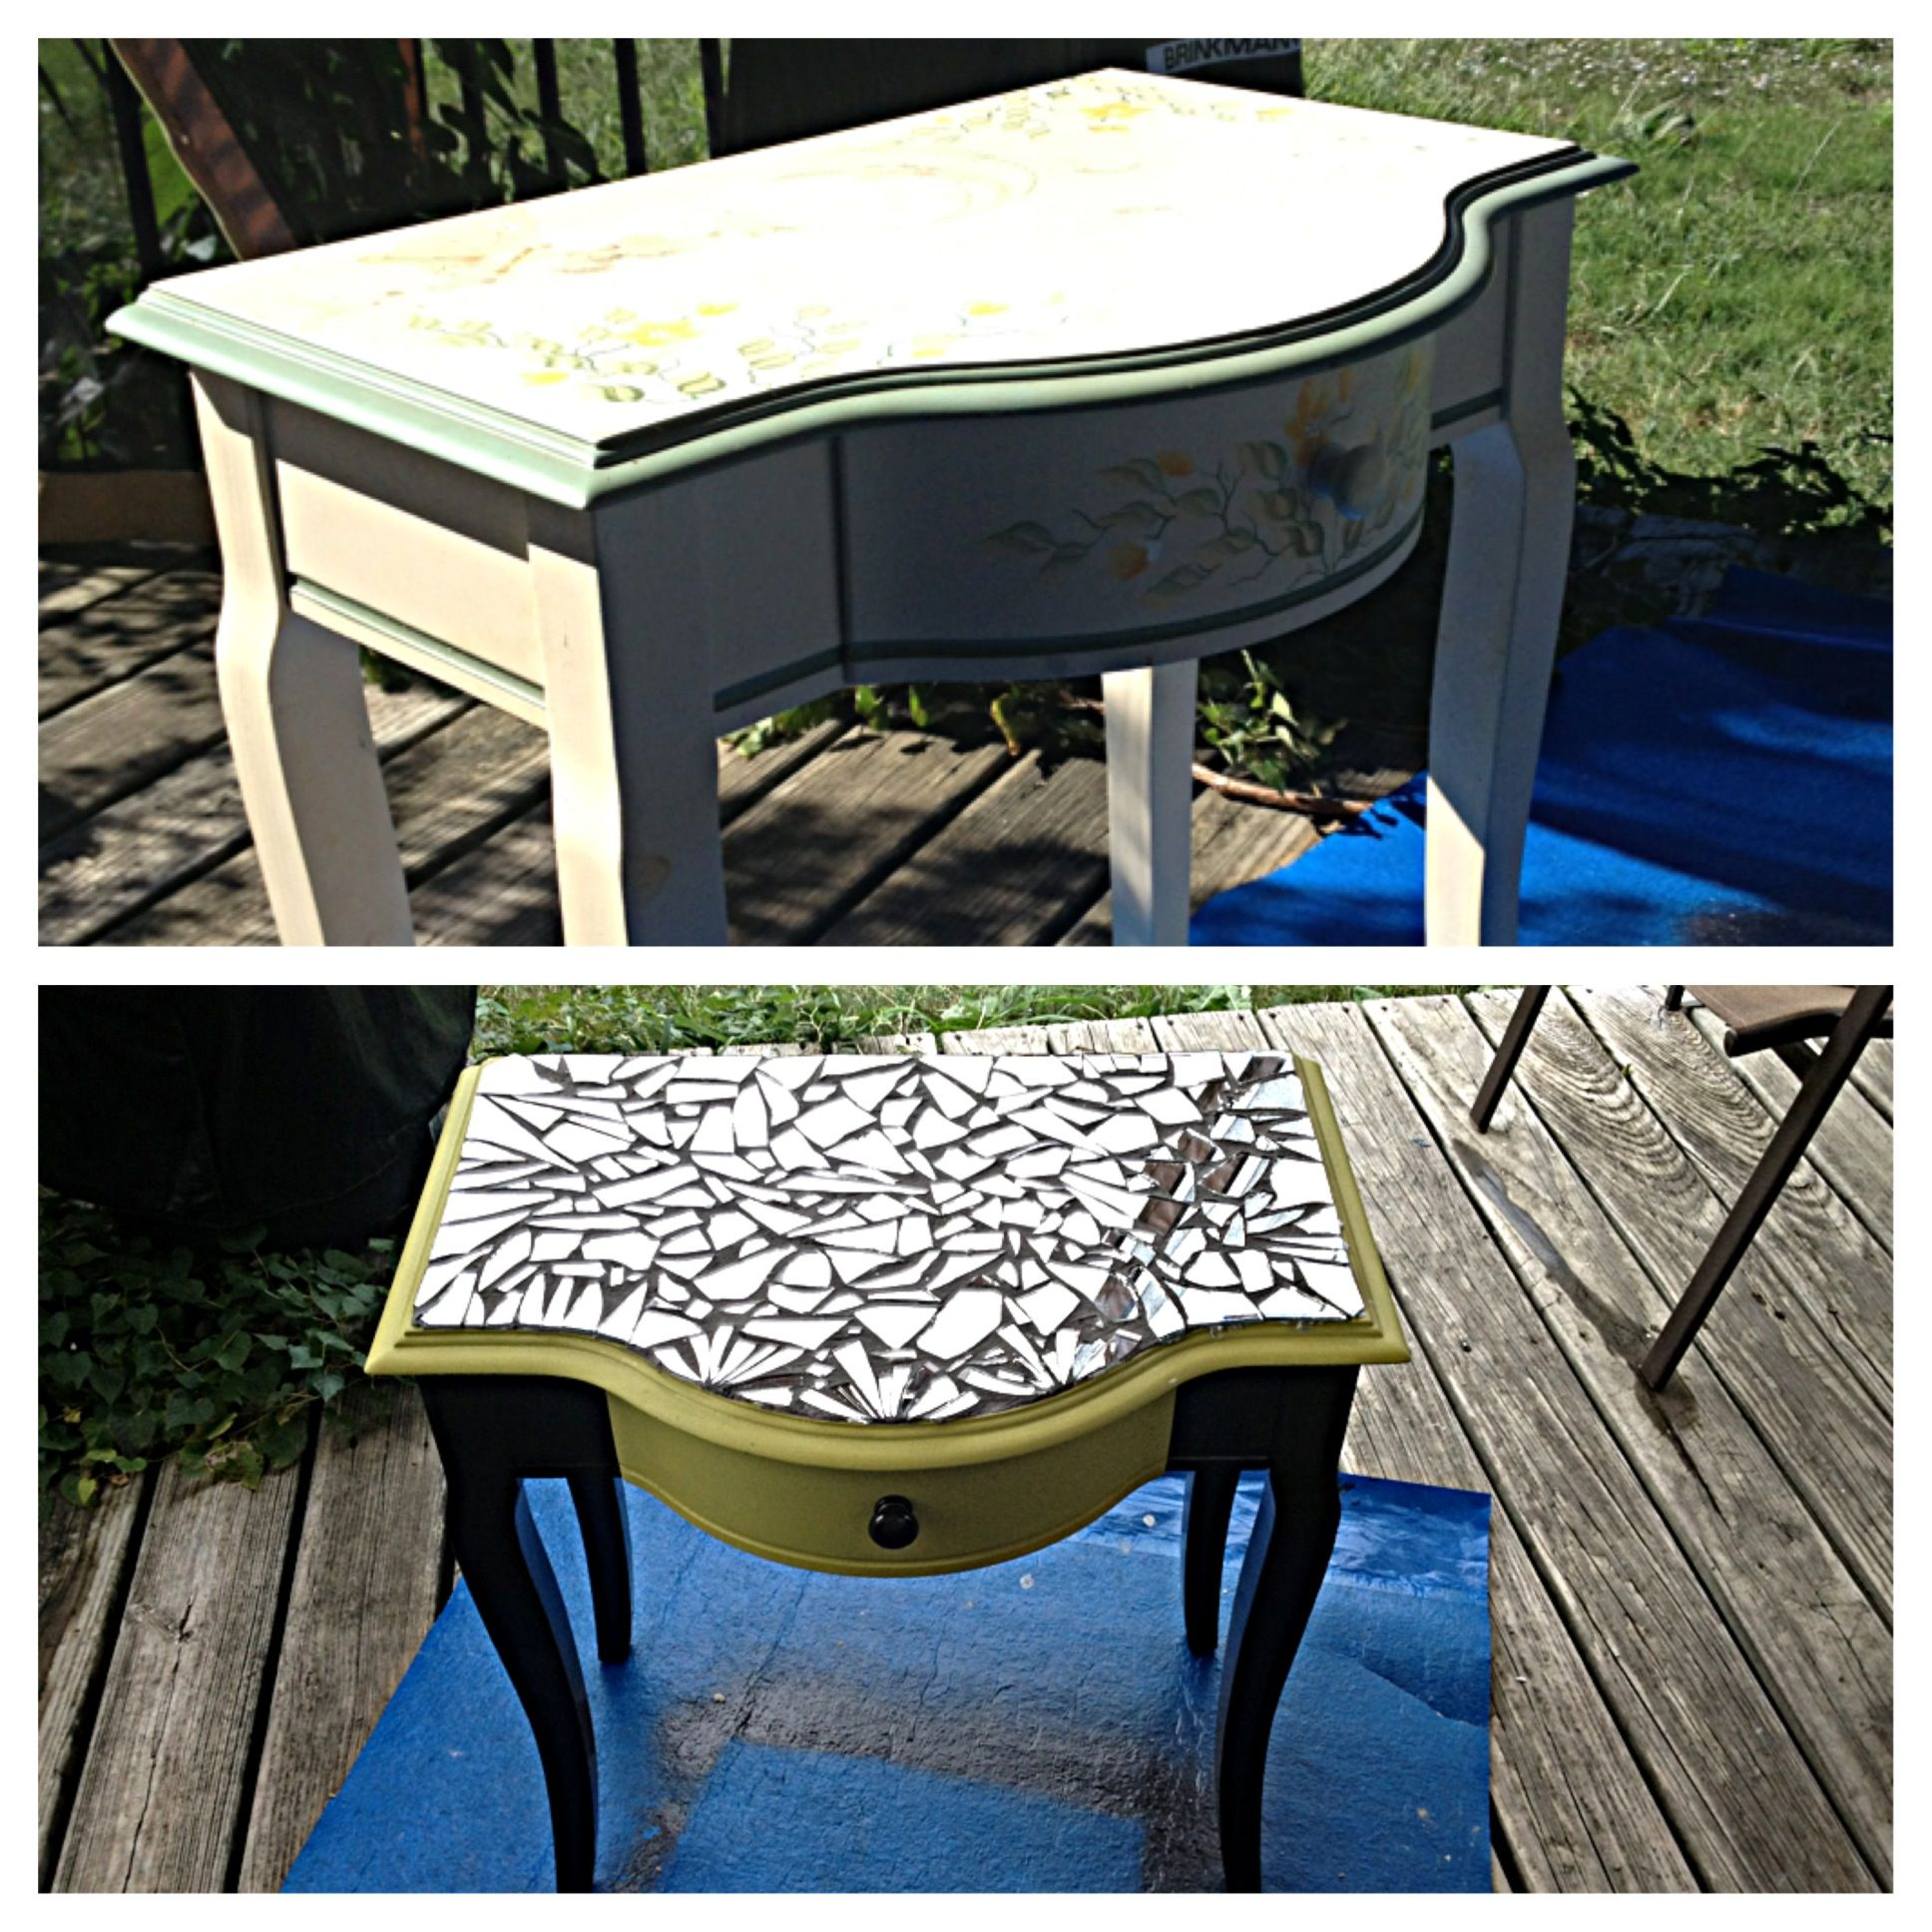 Broken mirror mosaic end table before and after mirror